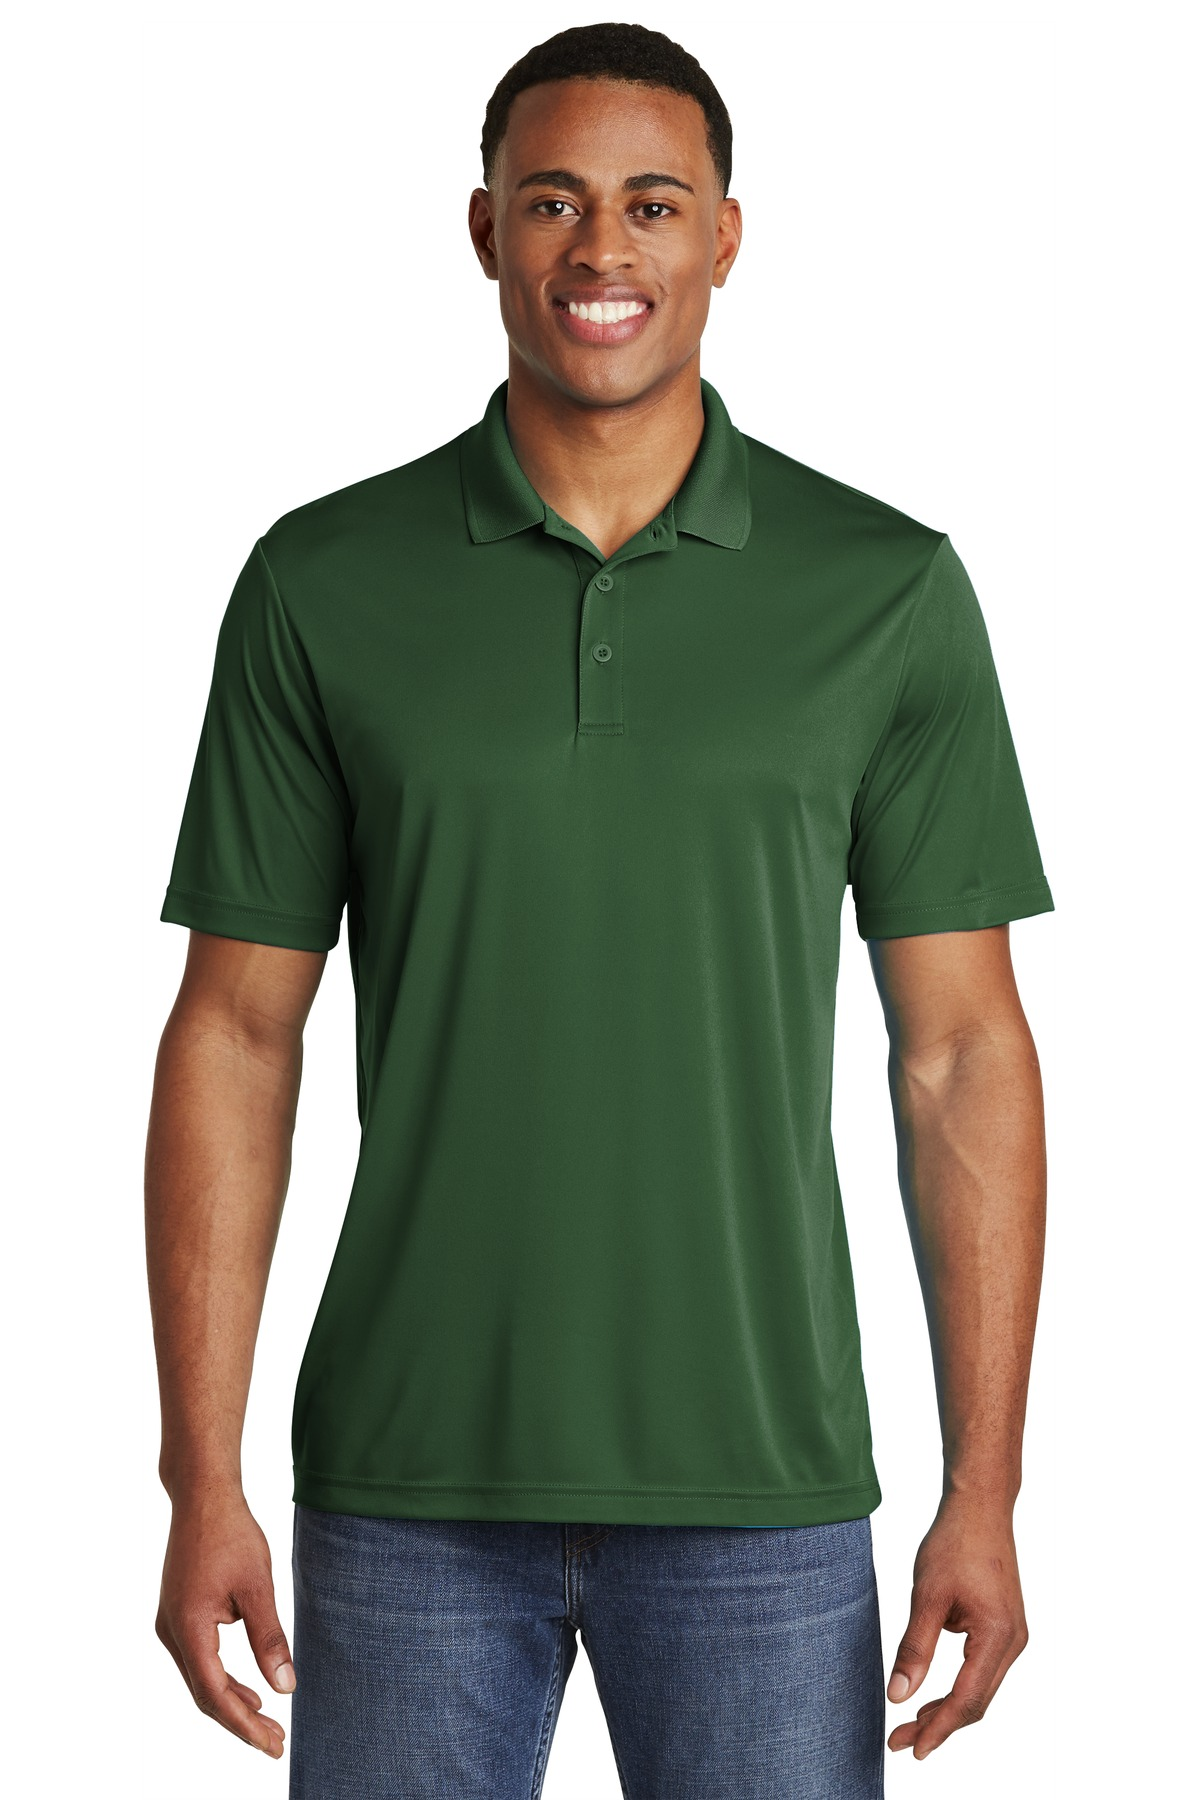 Sport-Tek  ®  PosiCharge  ®  Competitor  ™  Polo. ST550 - Forest Green